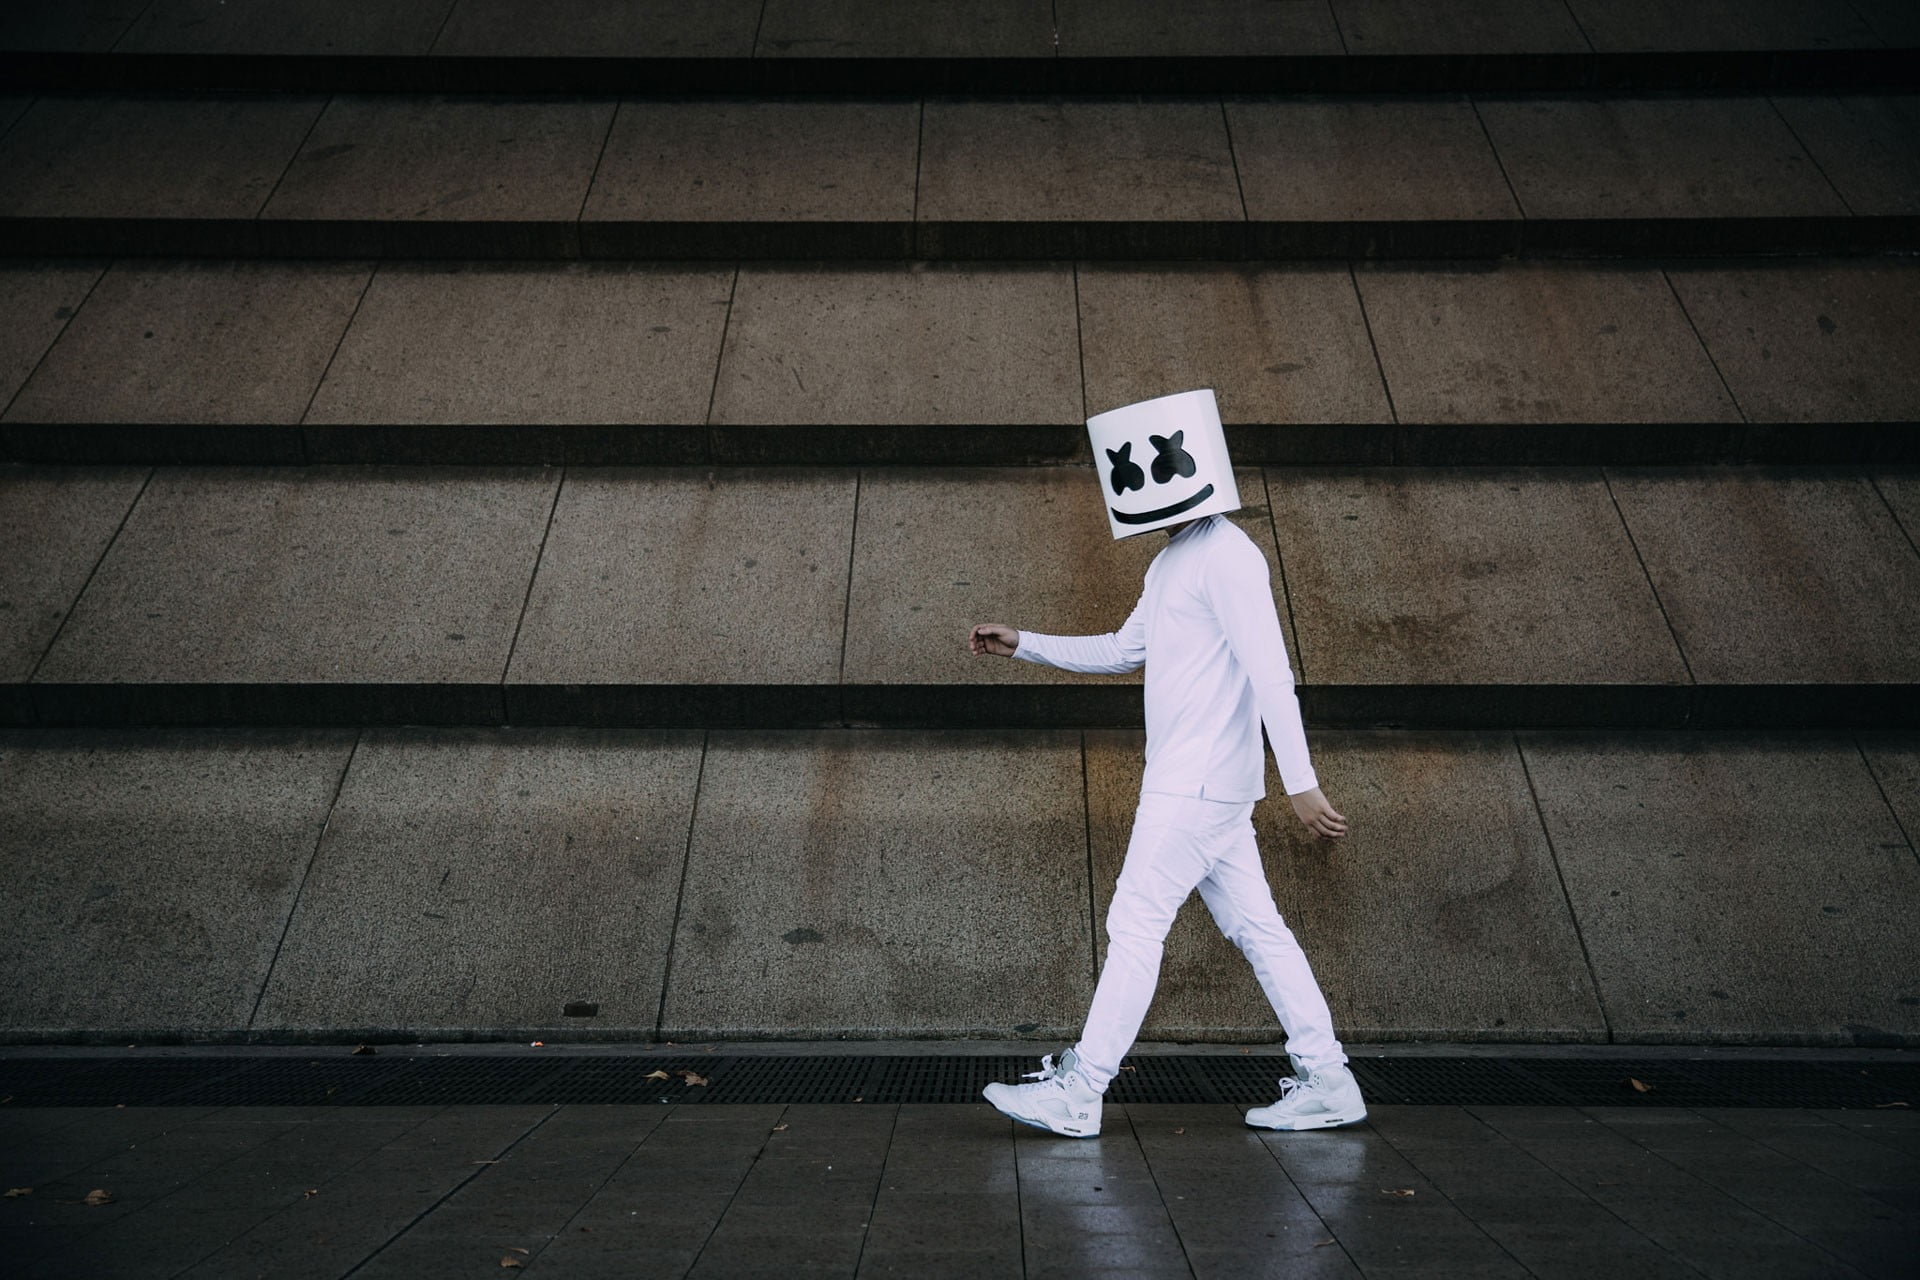 Download Marshmello Desktop Hd Wallpaper 64956 1920x1280 Px High